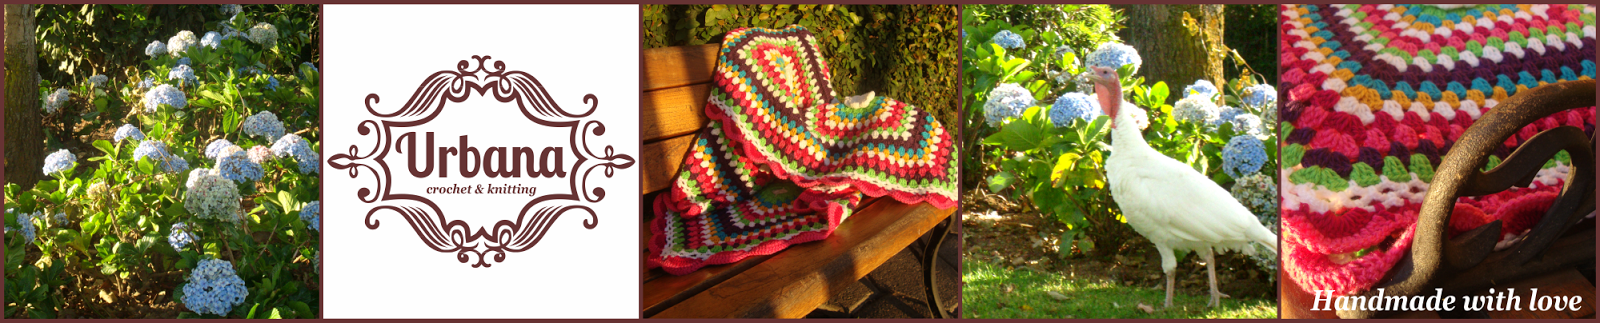 Urbana Crochet and Knitting